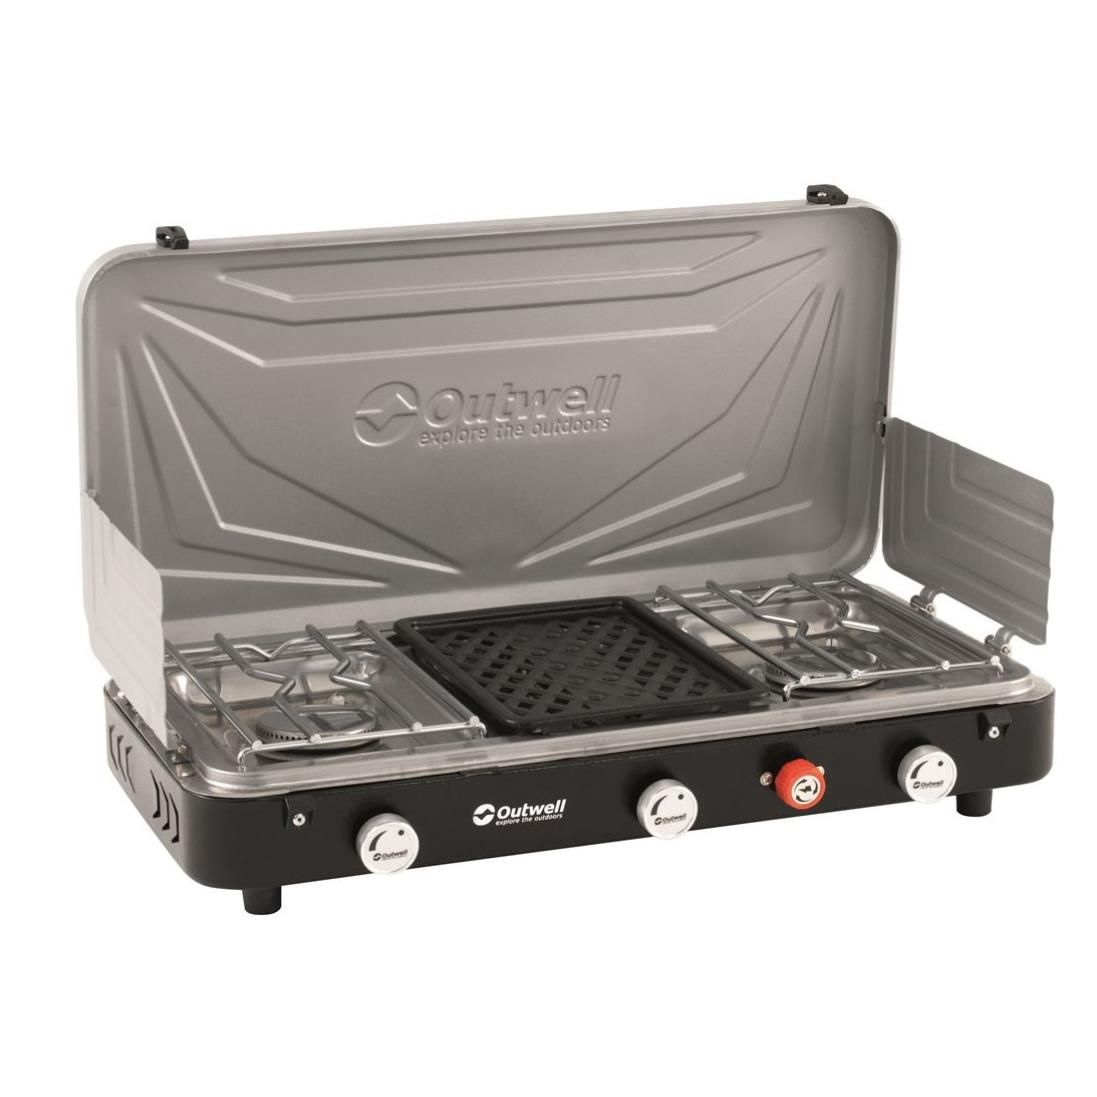 Angebote Grill Doorout Angebote Outwell Rukutu Stove De Campingkocher Und